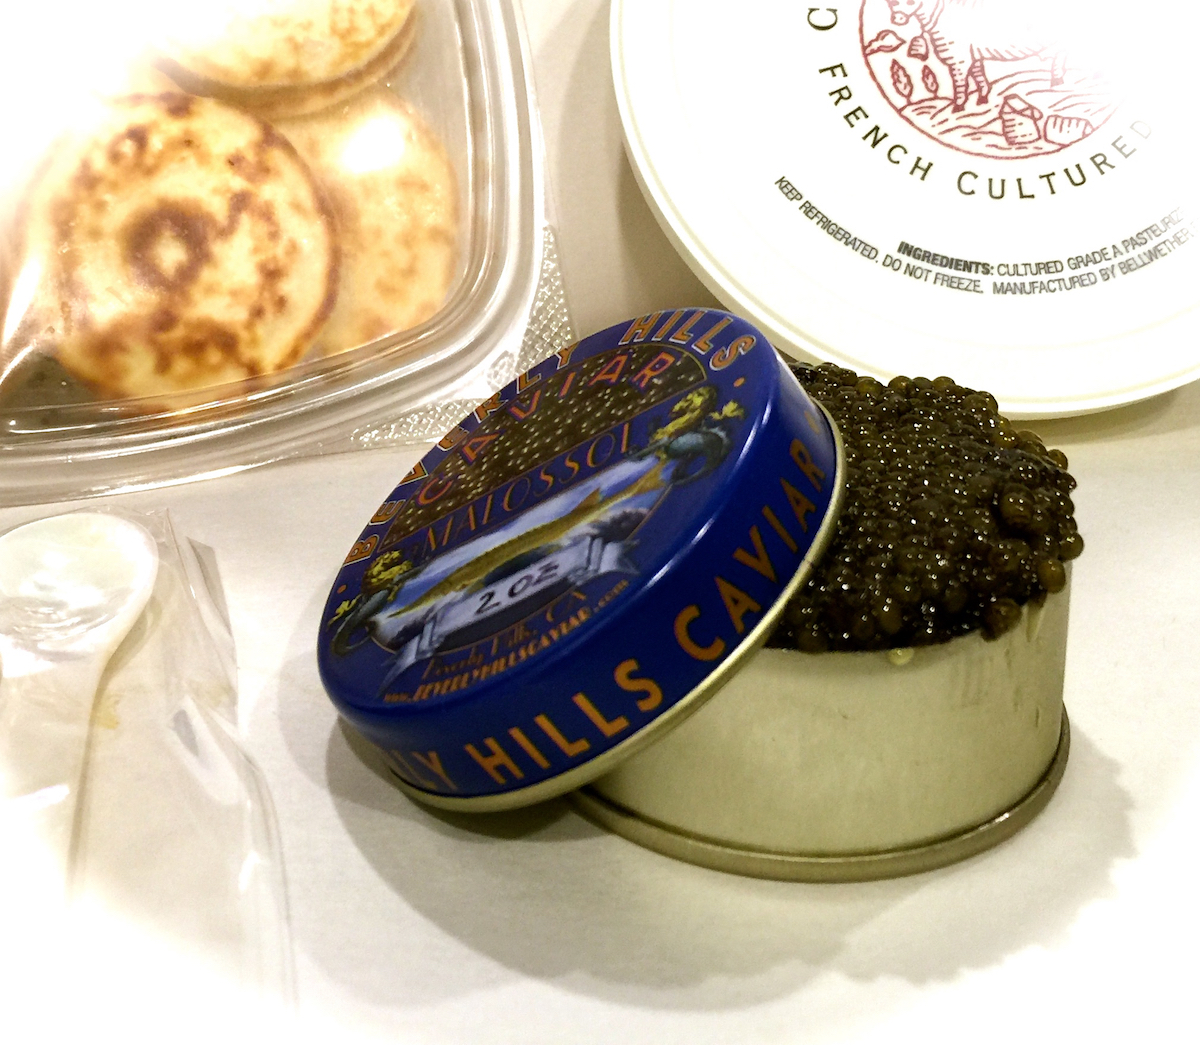 Online Caviar Deal in Illinois Caviar Promo in Illinois caviar deal, caviar promotion, online caviar deal, caviar deals